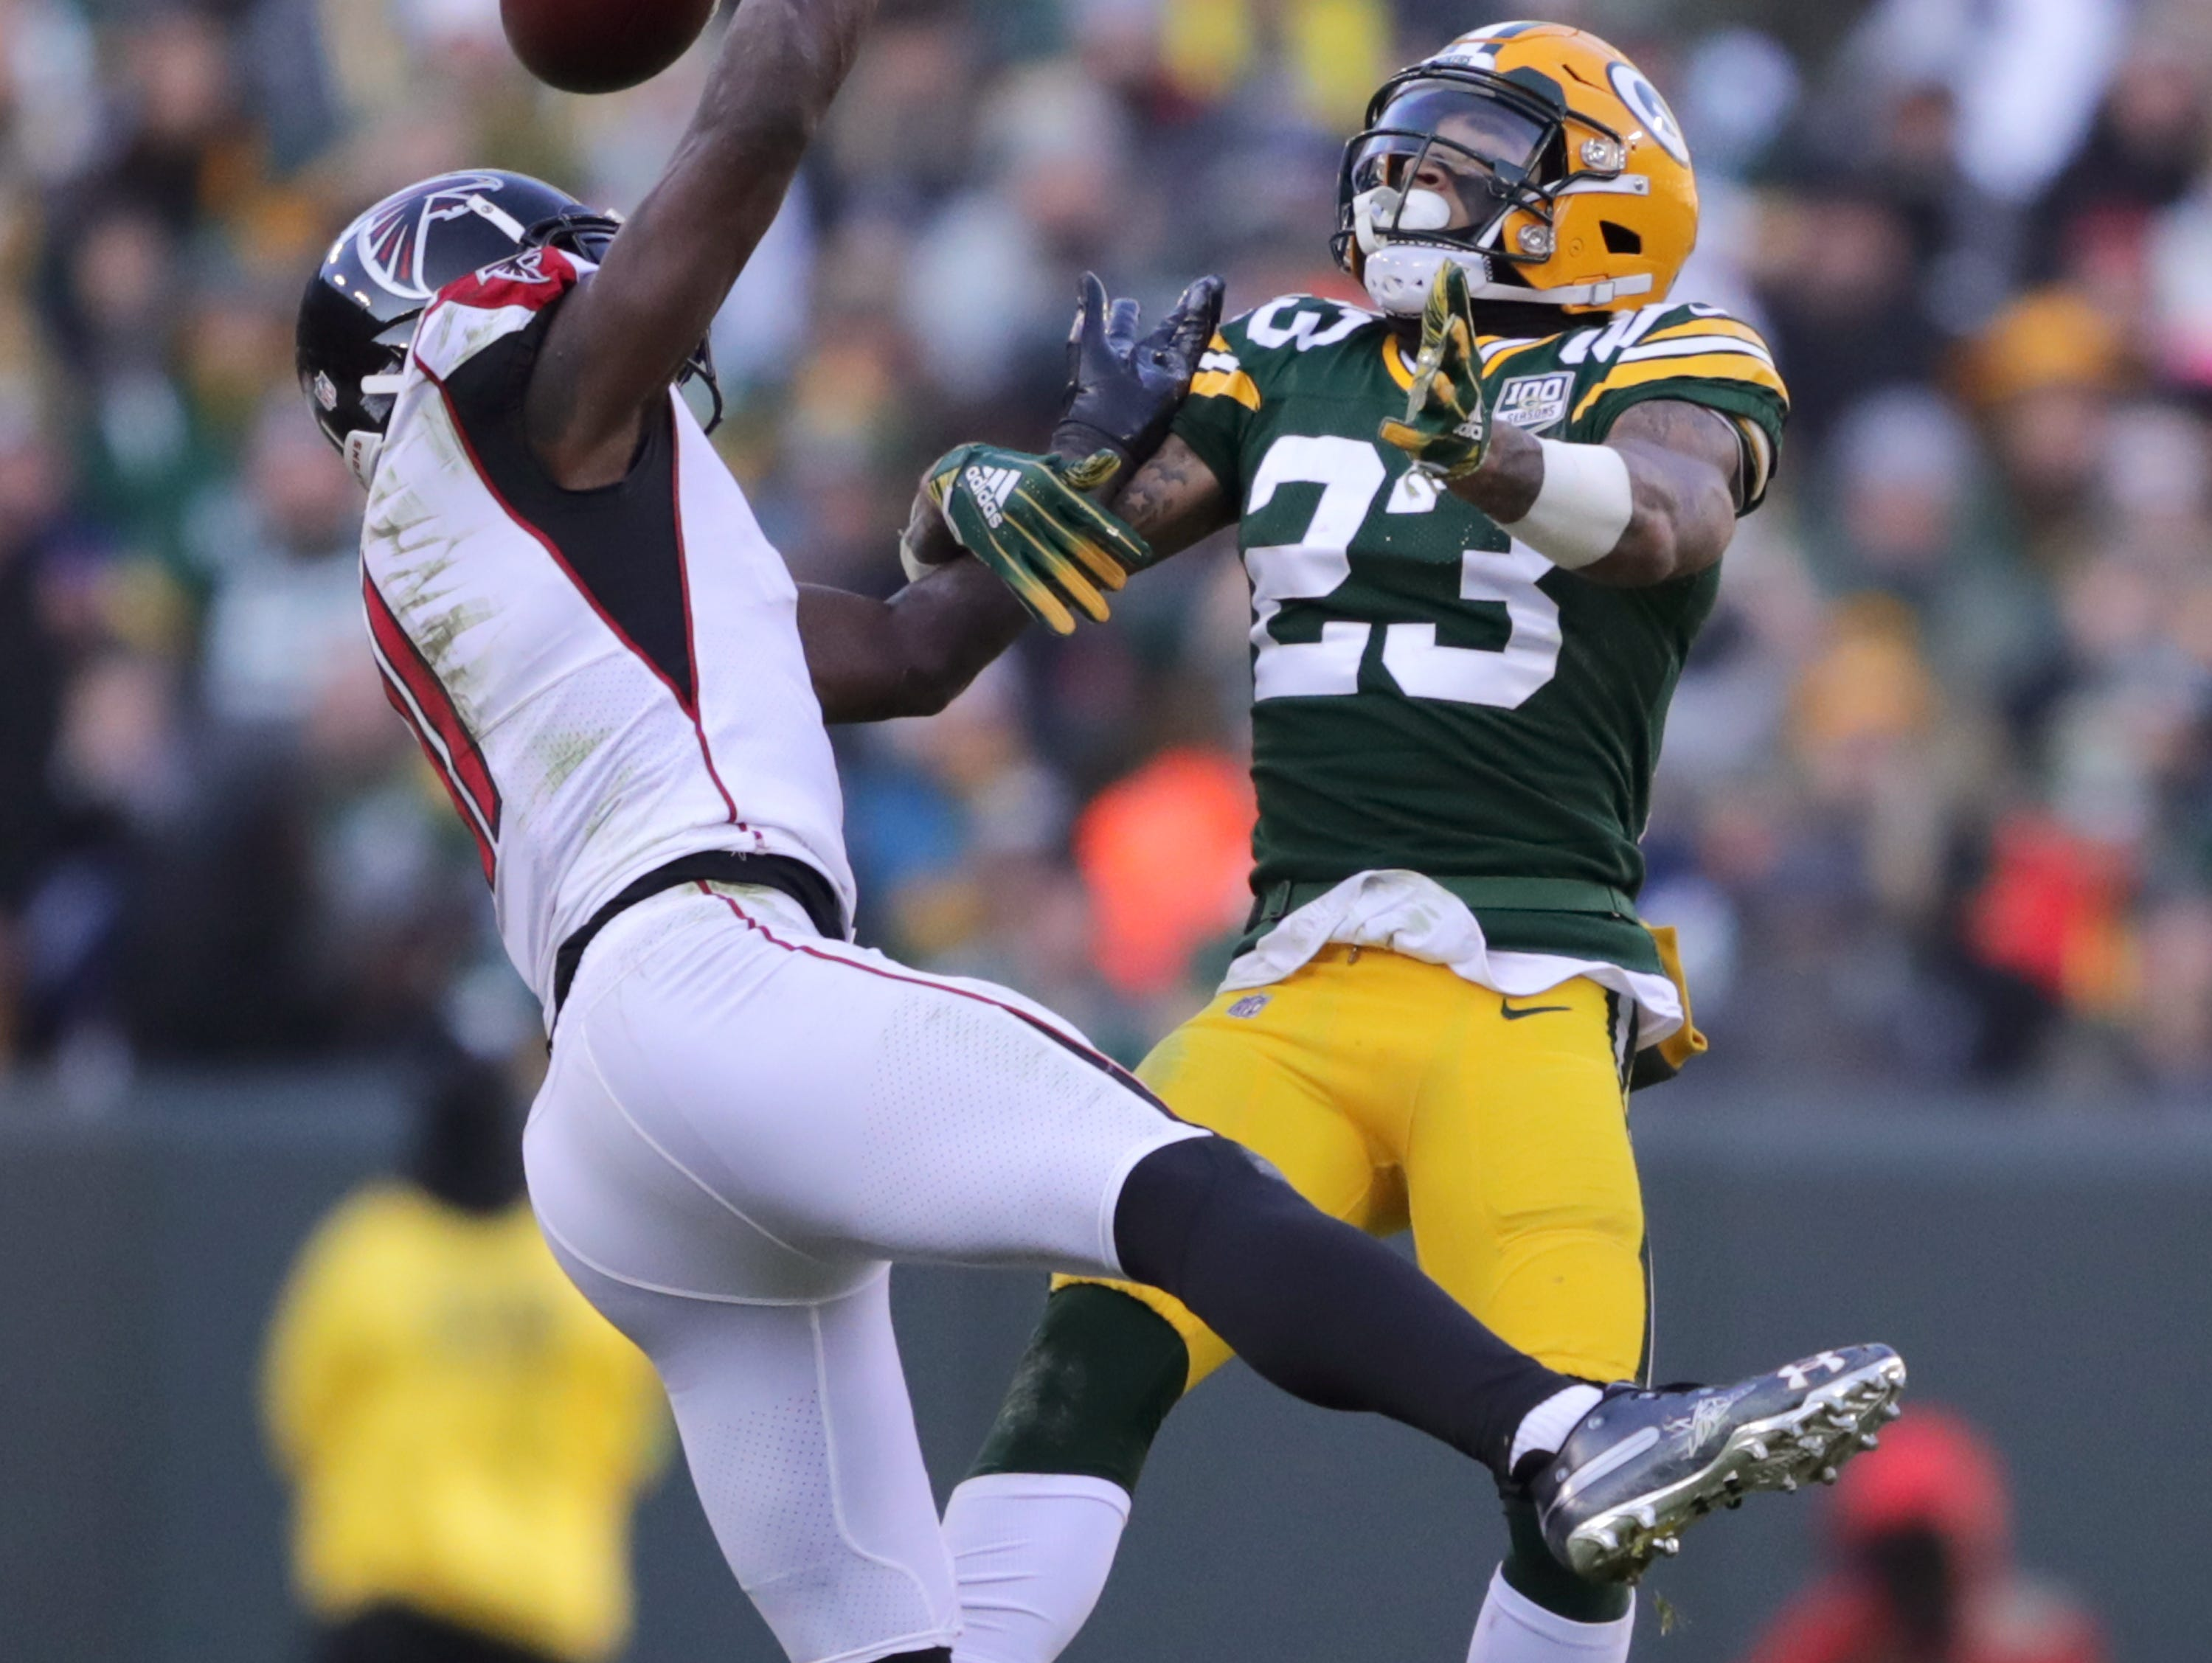 Green Bay Packers cornerback Jaire Alexander breaks up a pass intended for Atlanta Falcons wide receiver Julio Jones during their football game on Sunday, December 9, 2018, at Lambeau Field in Green Bay, Wis.